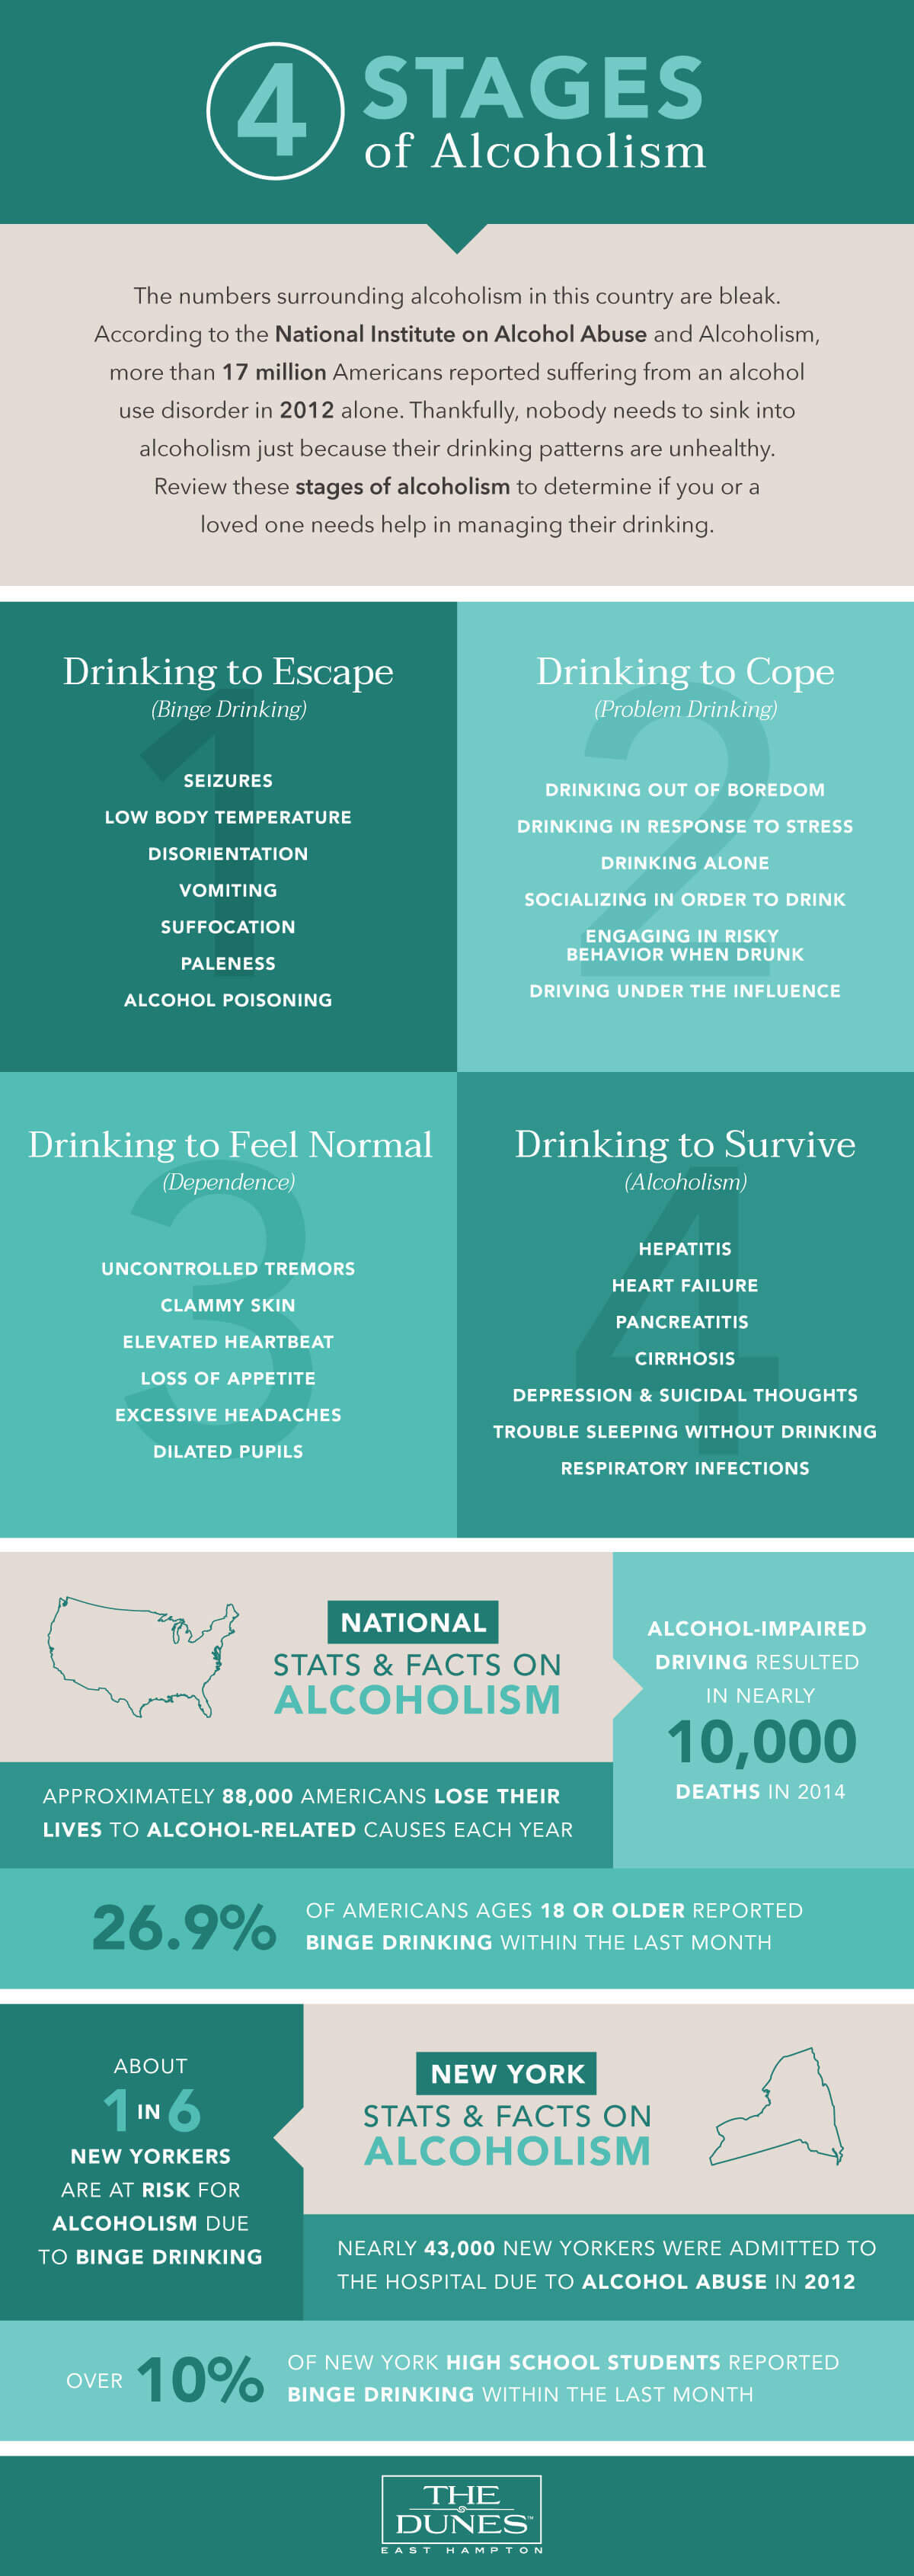 Four Stages of Alcoholism Infographic - US And New York Stats